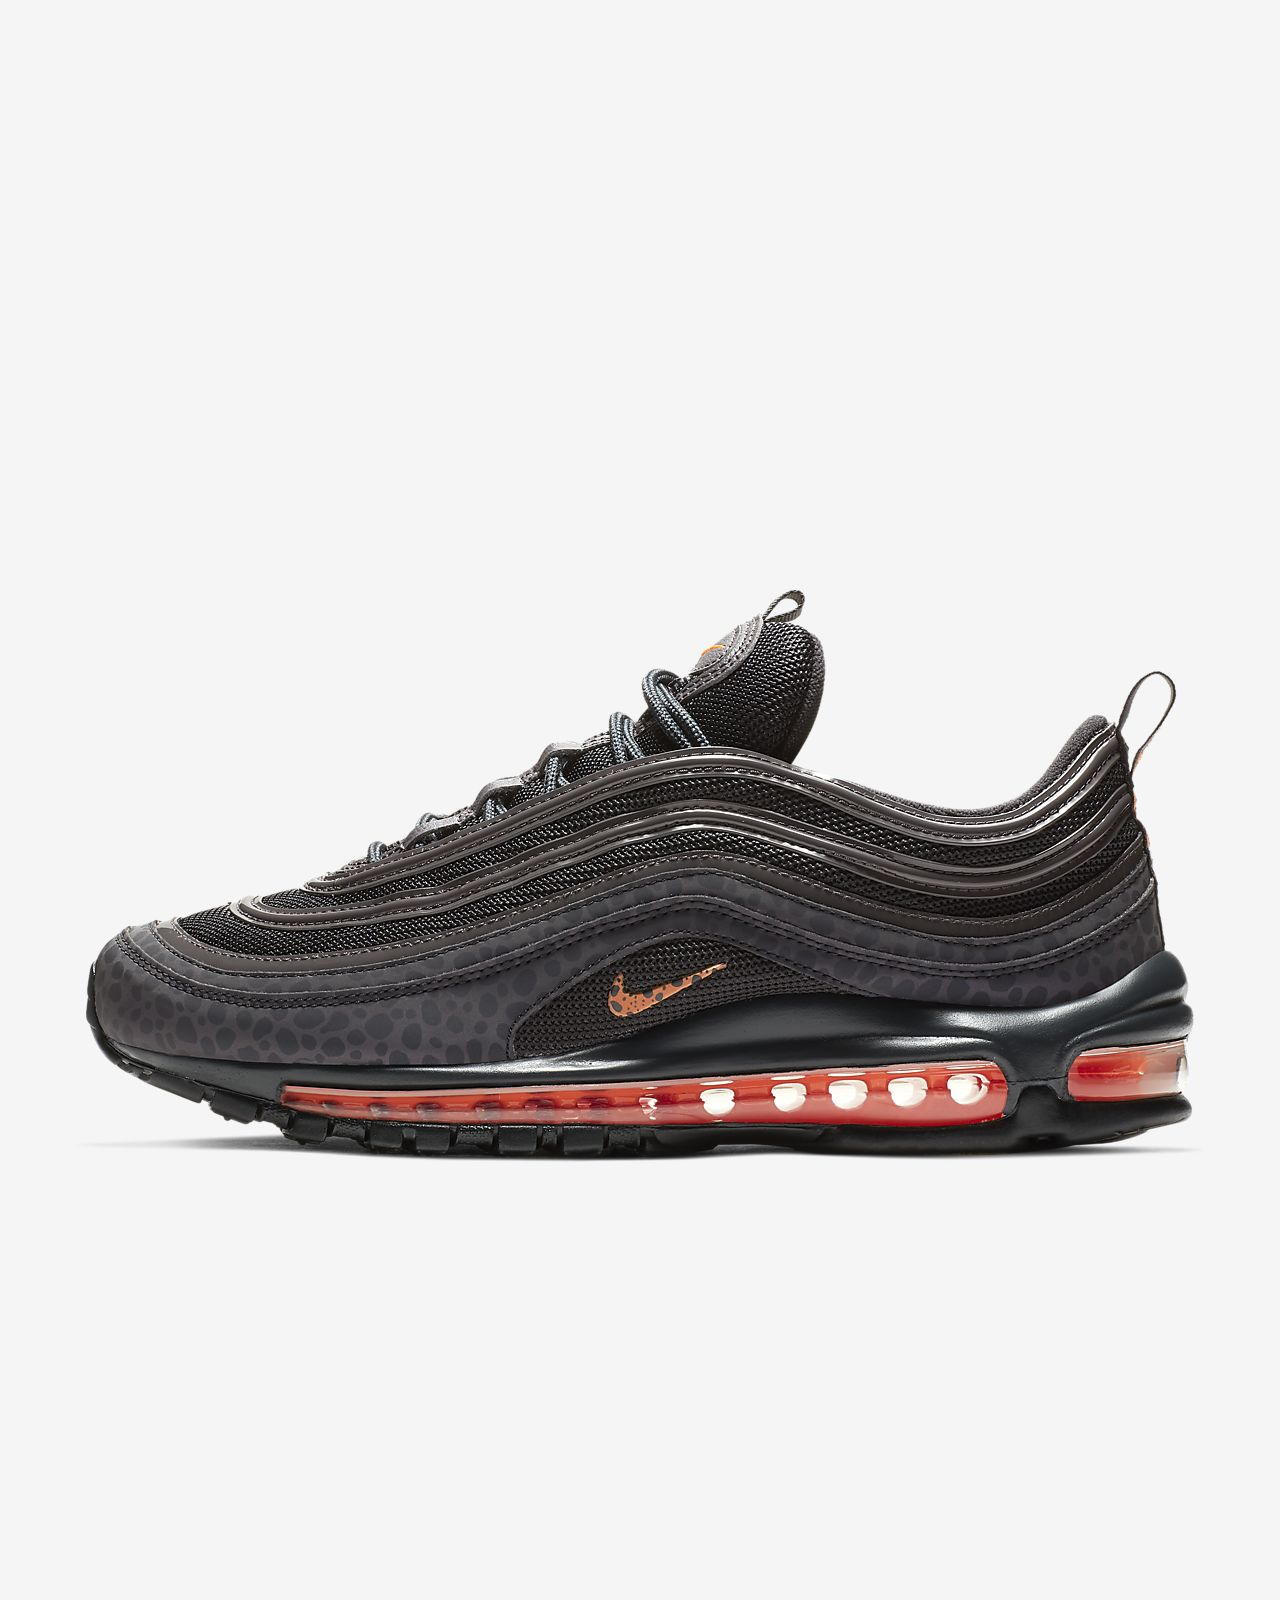 5f9011b73e4 Nike Air Max 97 SE Reflective Men s Shoe. Nike.com AU